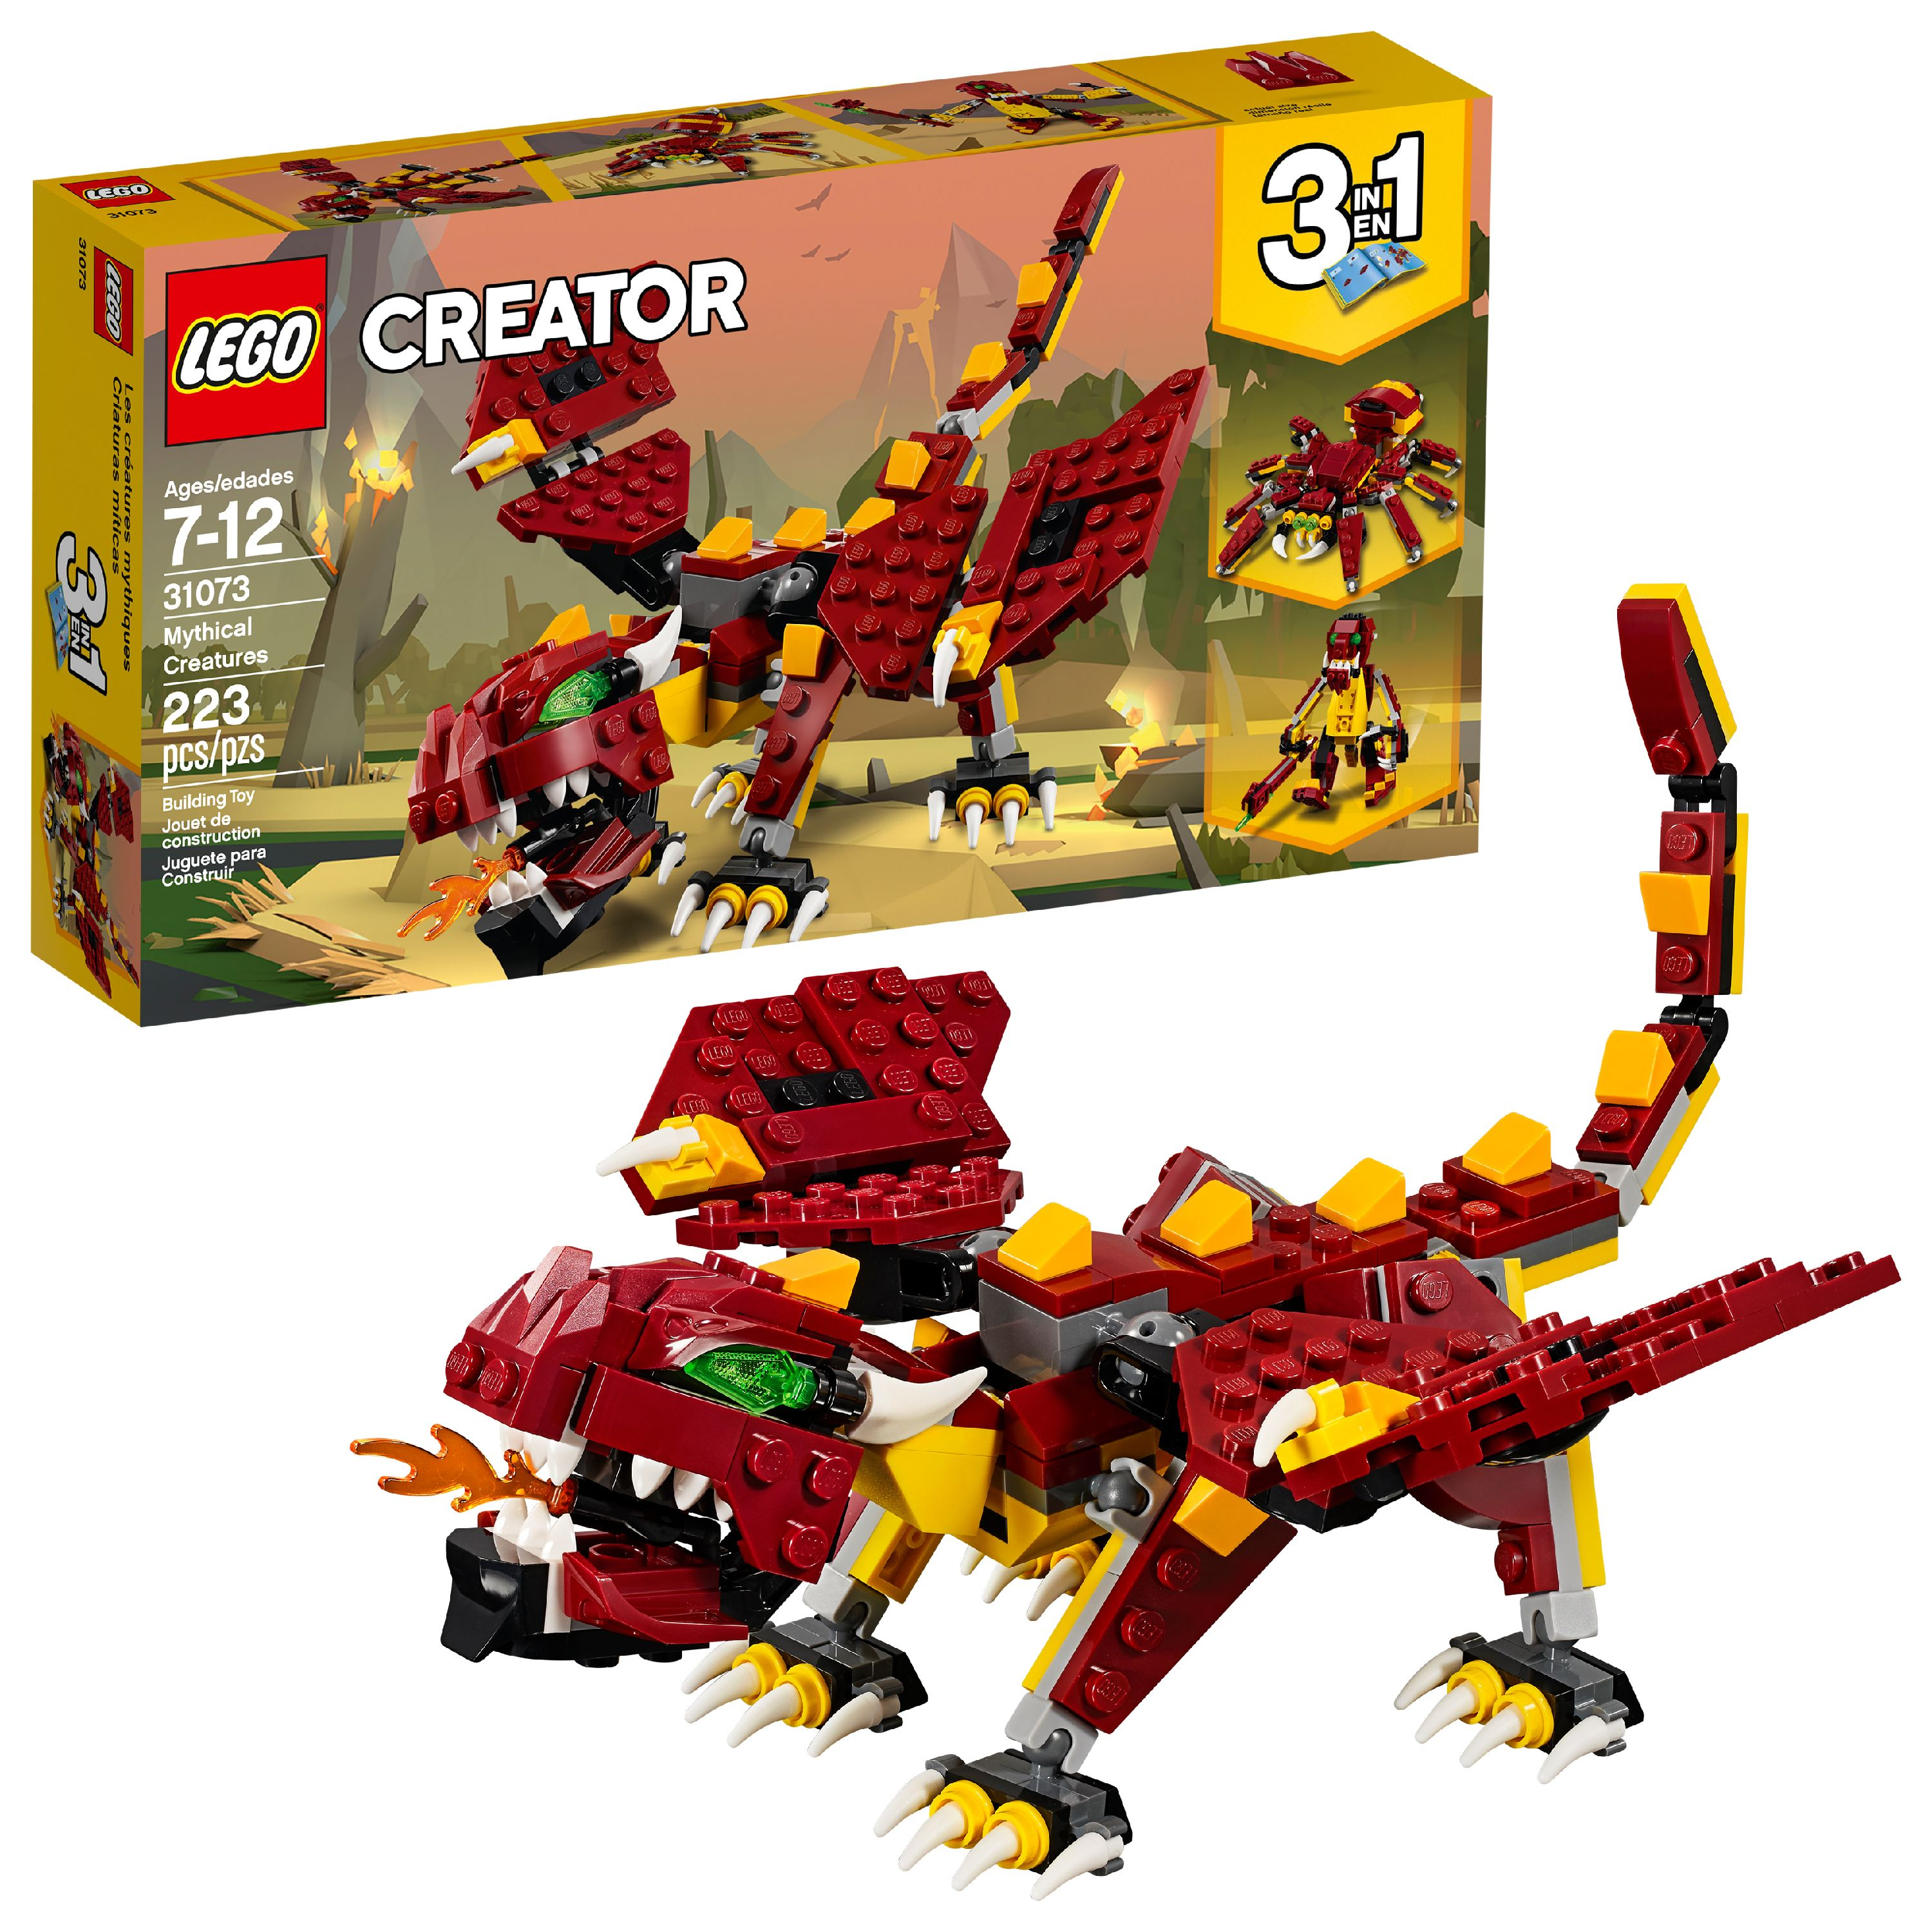 LEGO Creator 3in1 Mythical Creatures 31073 (223 Pieces)